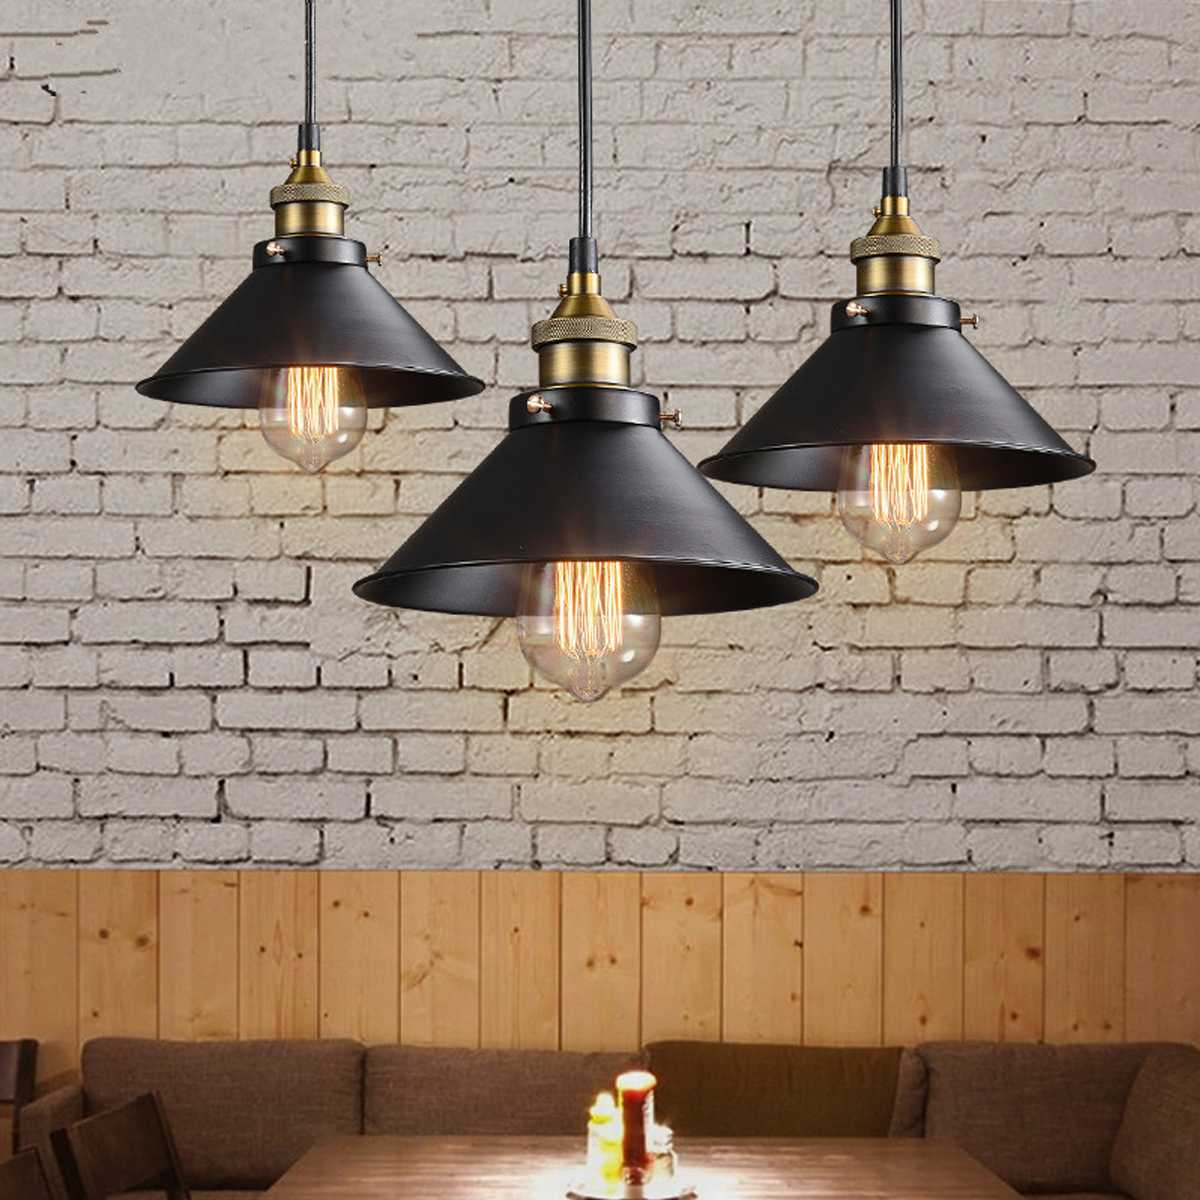 Modern Pendant Light Retro Iron Pendant Lamp Loft Industrial Lamp Hanging Light For Kitchen Cafe Home Decor Lighting